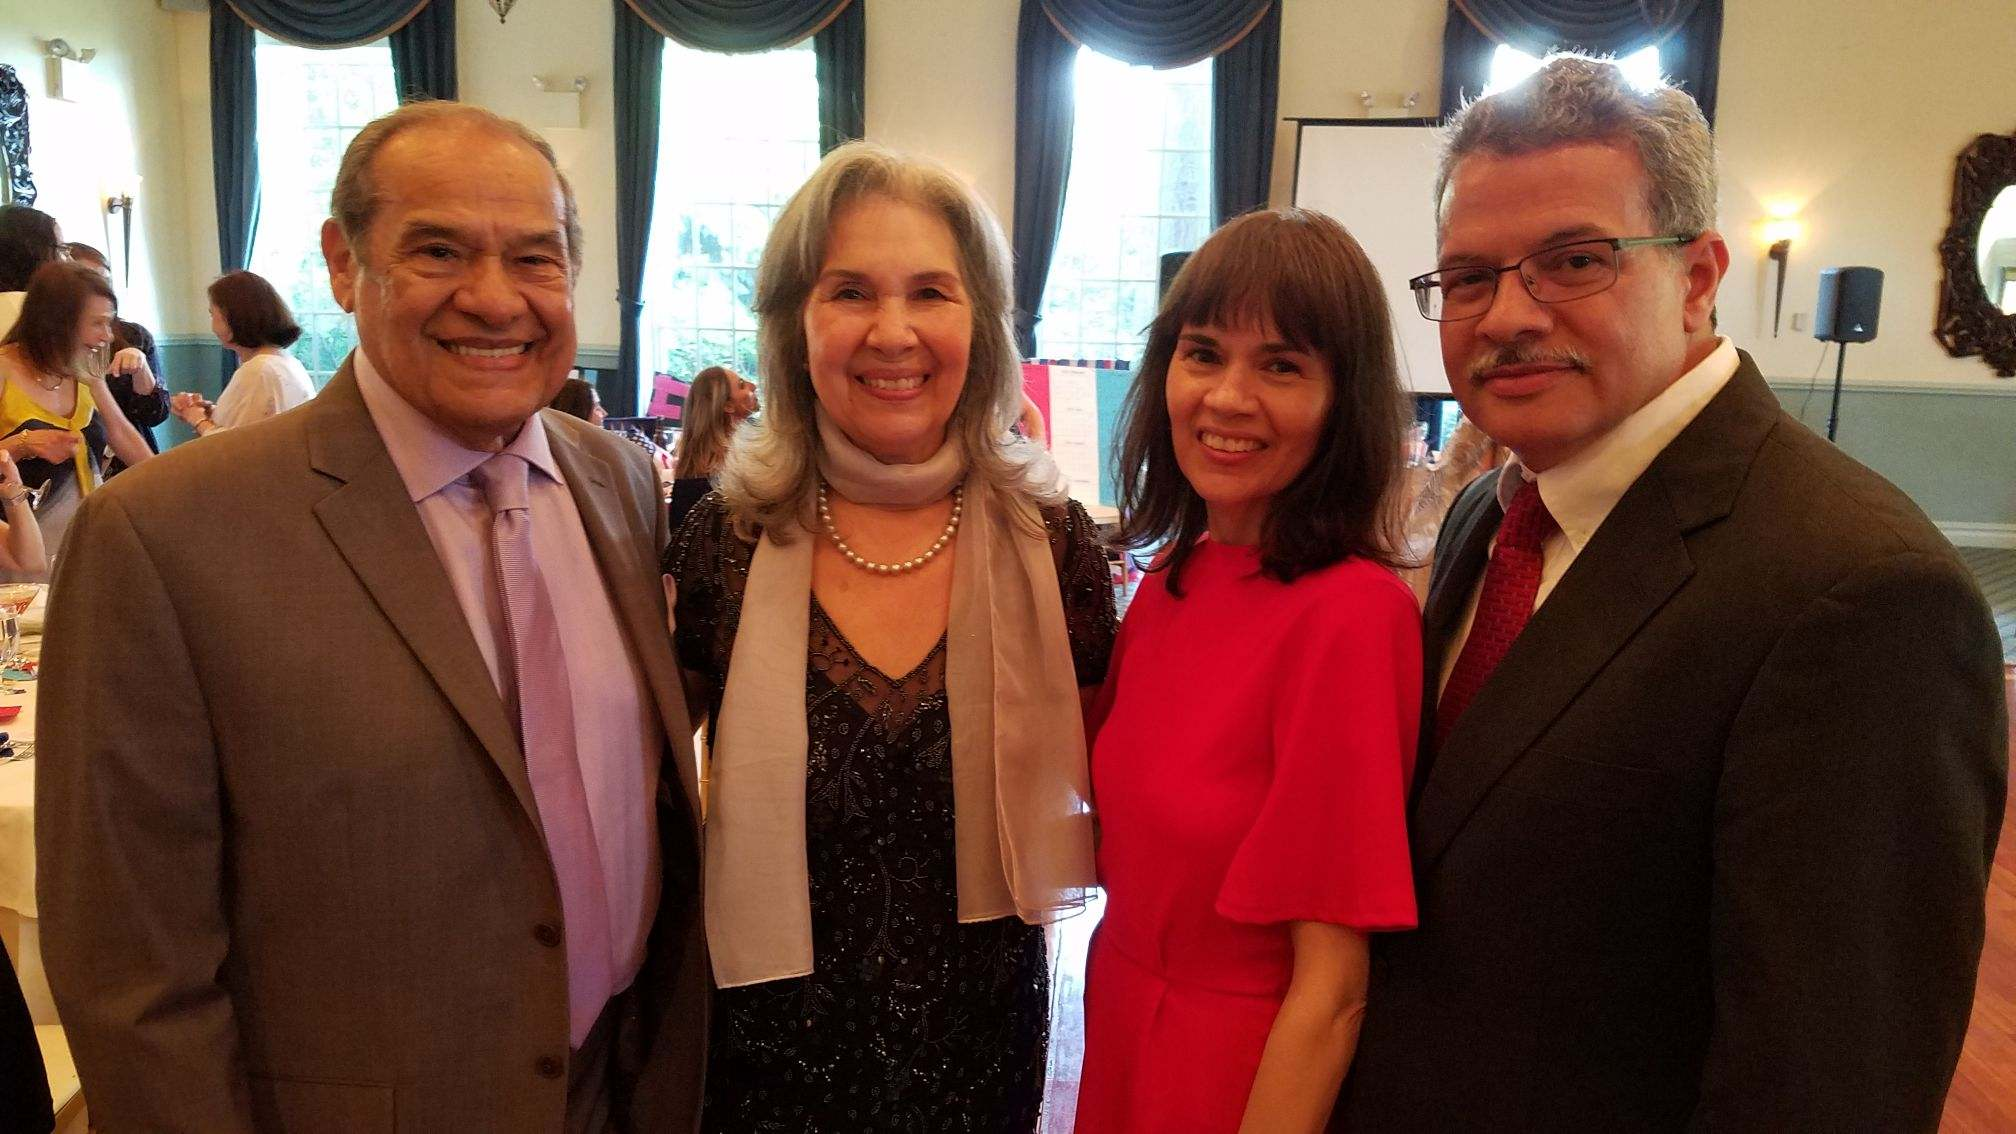 Elizabeth Mendoza, second from left, with family members at her retirement party.